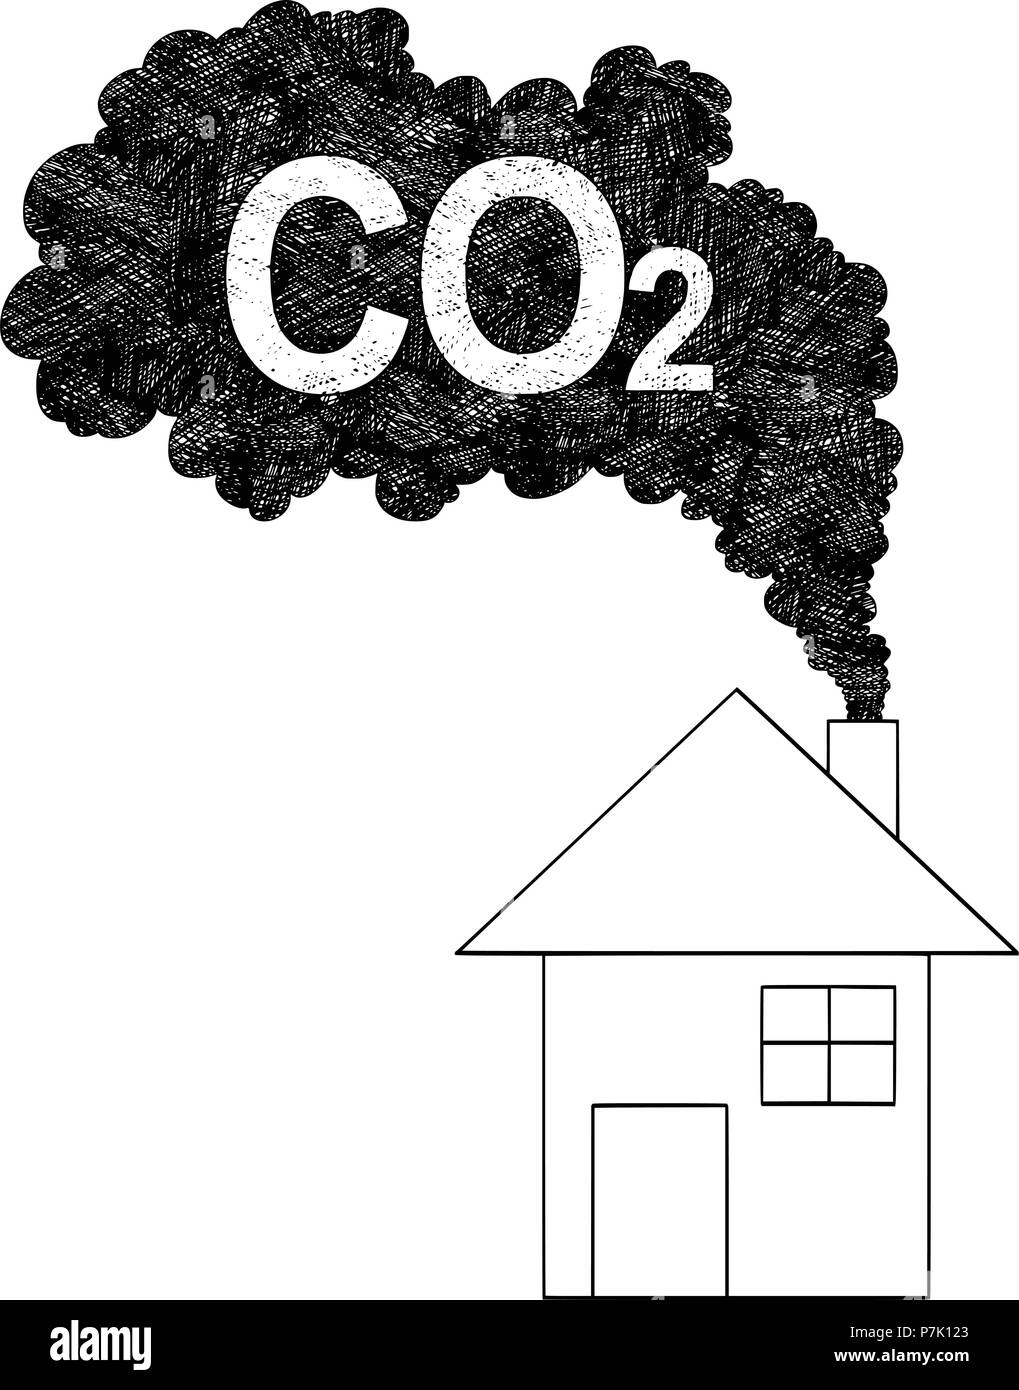 Vector Artistic Drawing Illustration of Smoke Coming from House Chimney, Carbon Dioxide or CO2 Air Pollution Concept - Stock Image